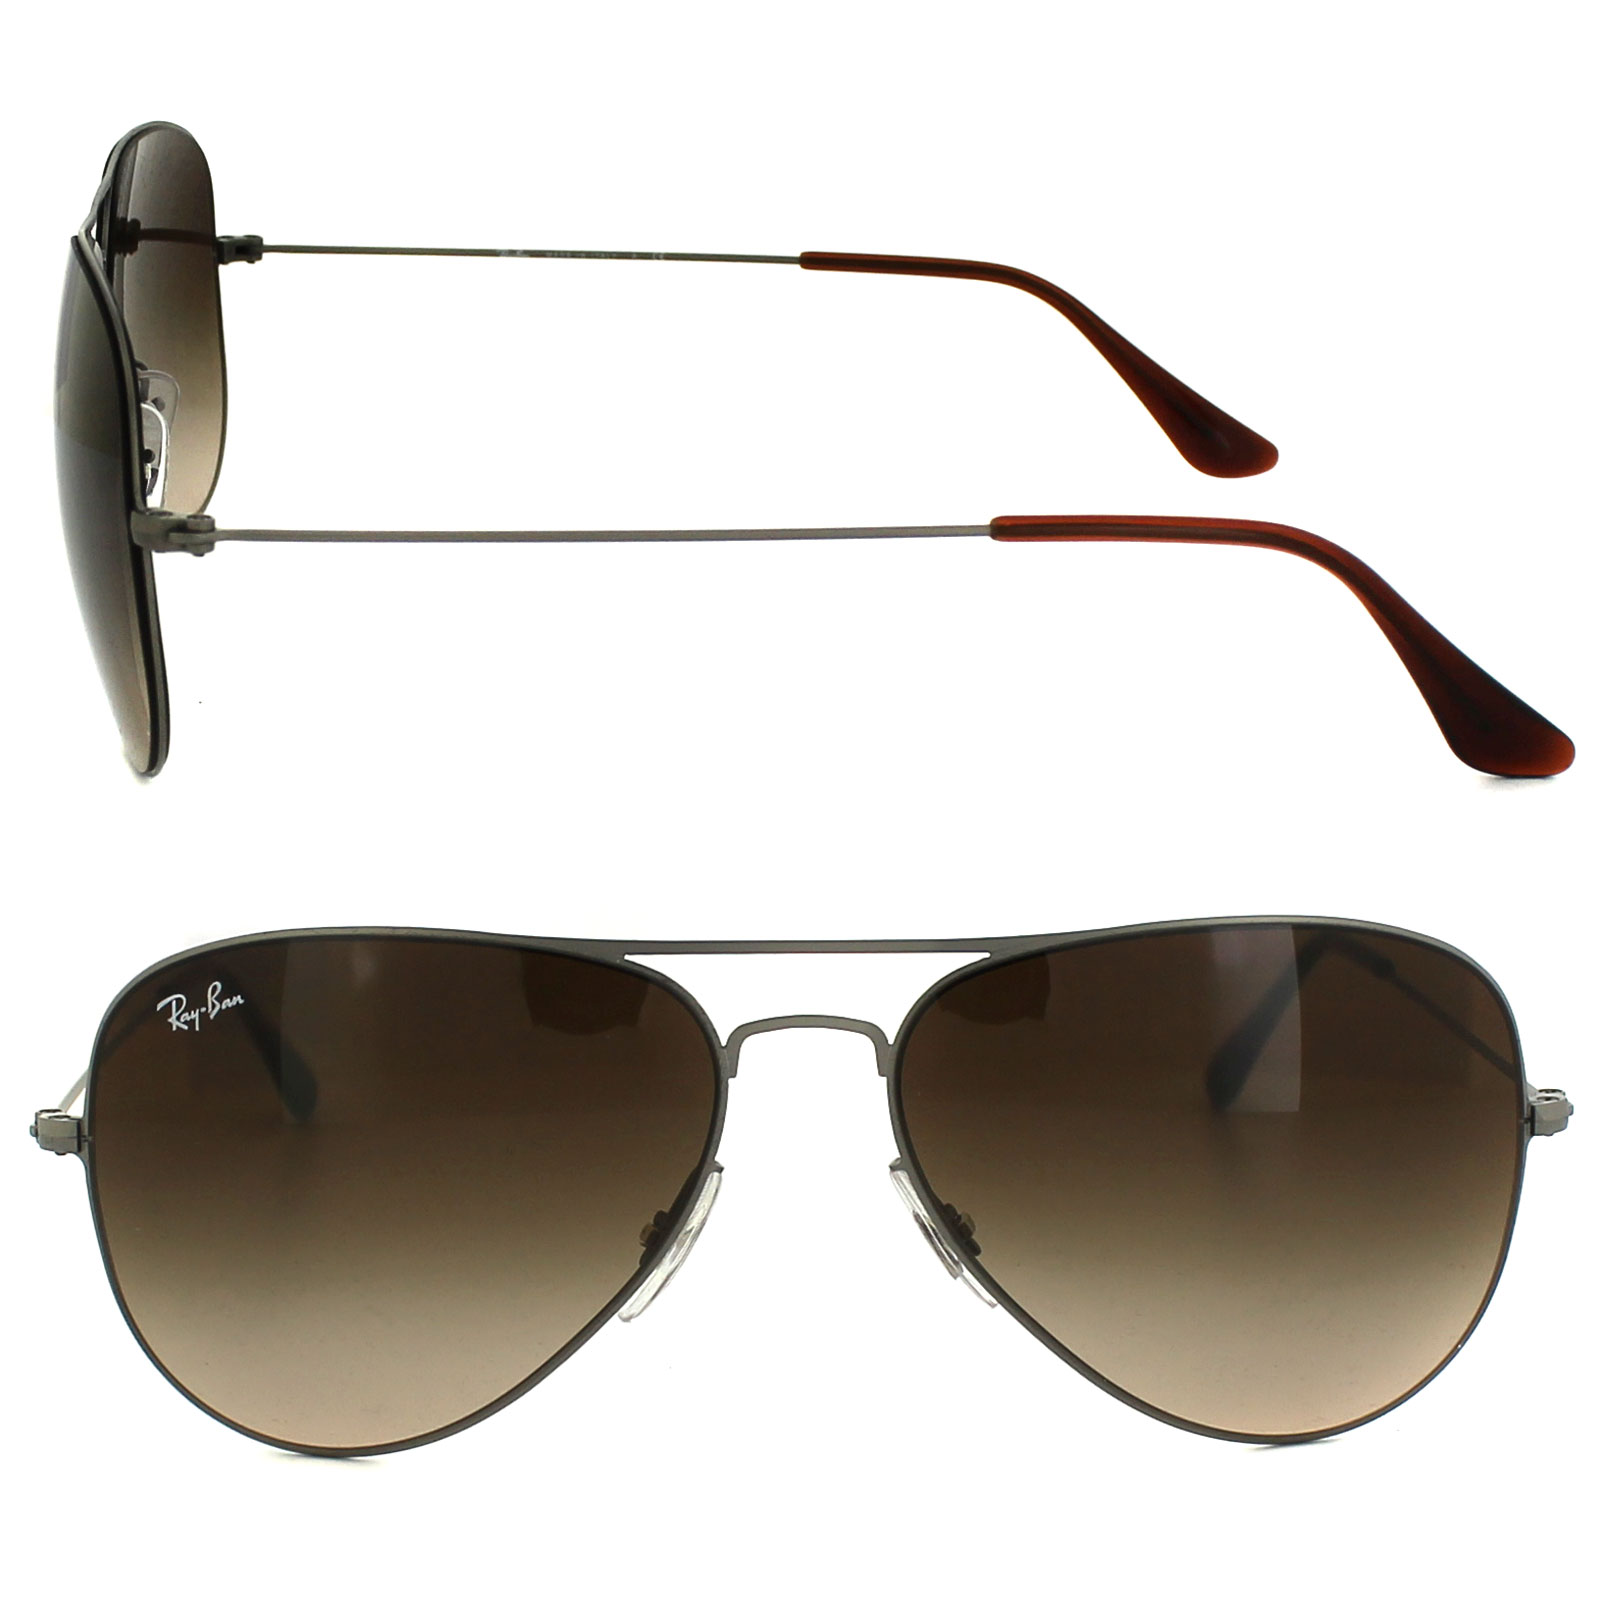 cheap ray ban aviator flat metal 3513 sunglasses discounted sunglasses. Black Bedroom Furniture Sets. Home Design Ideas